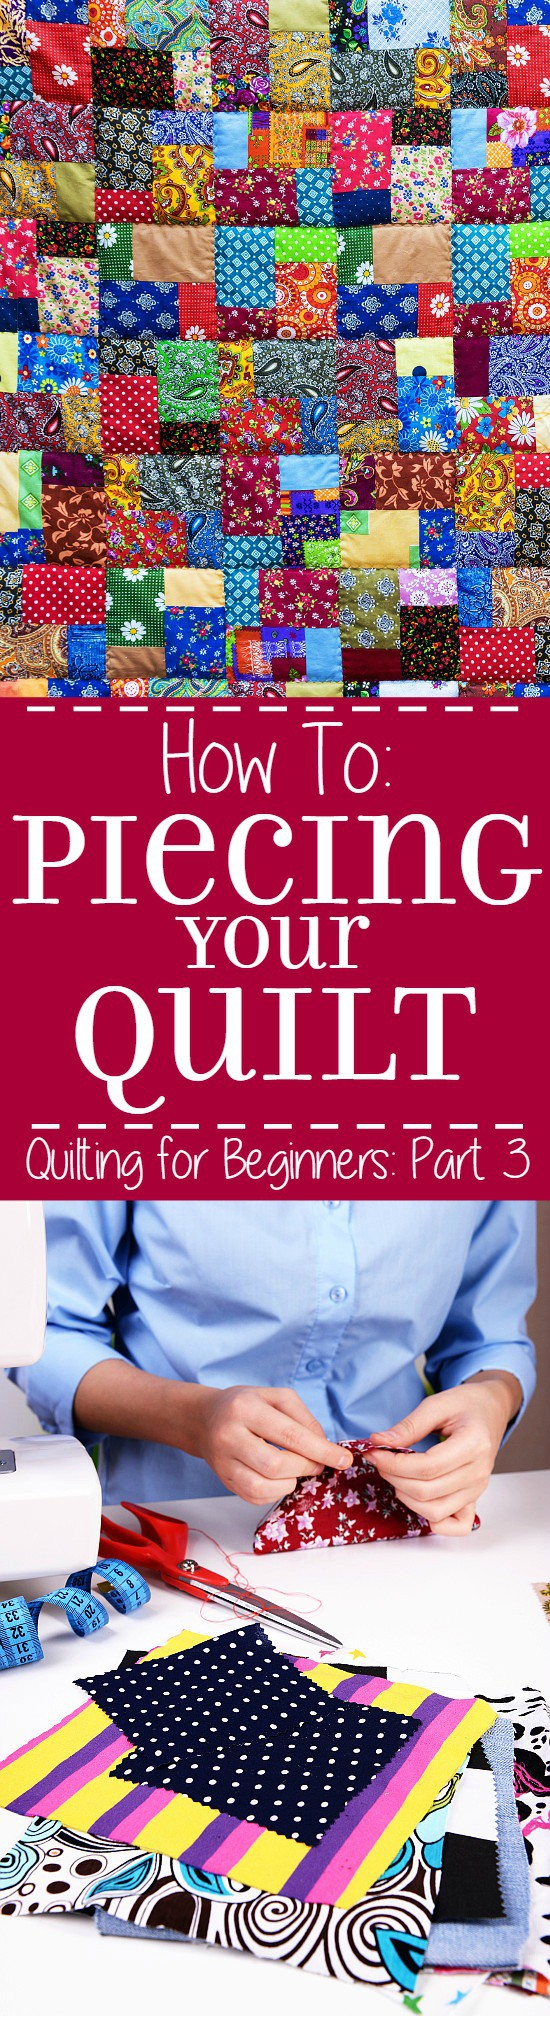 Piecing and Finishing Your Quilt Top -Part 3 in a 5-part Quilting for Beginners series. This Piecing and Finishing Your Quilt Topsection will walk you through piecing together your quilt top and sewing a perfect quarter inch seam. Make your own DIY sewing quilt with this step-by-step tutorial!